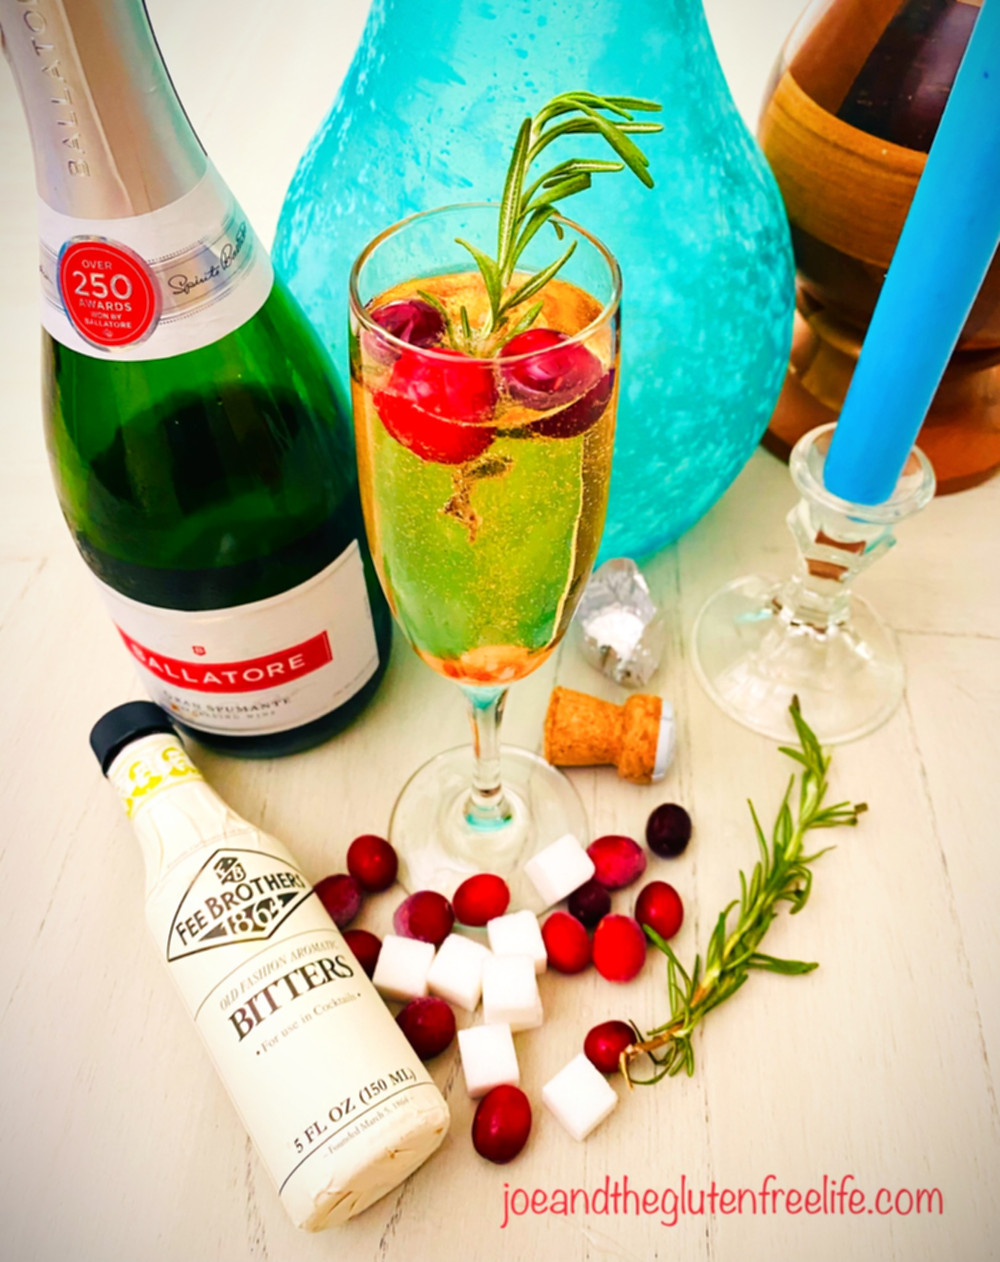 Simple, refreshing, elegant, and above all: easy to make. This Champagne cocktail will be a new favorite of yours!